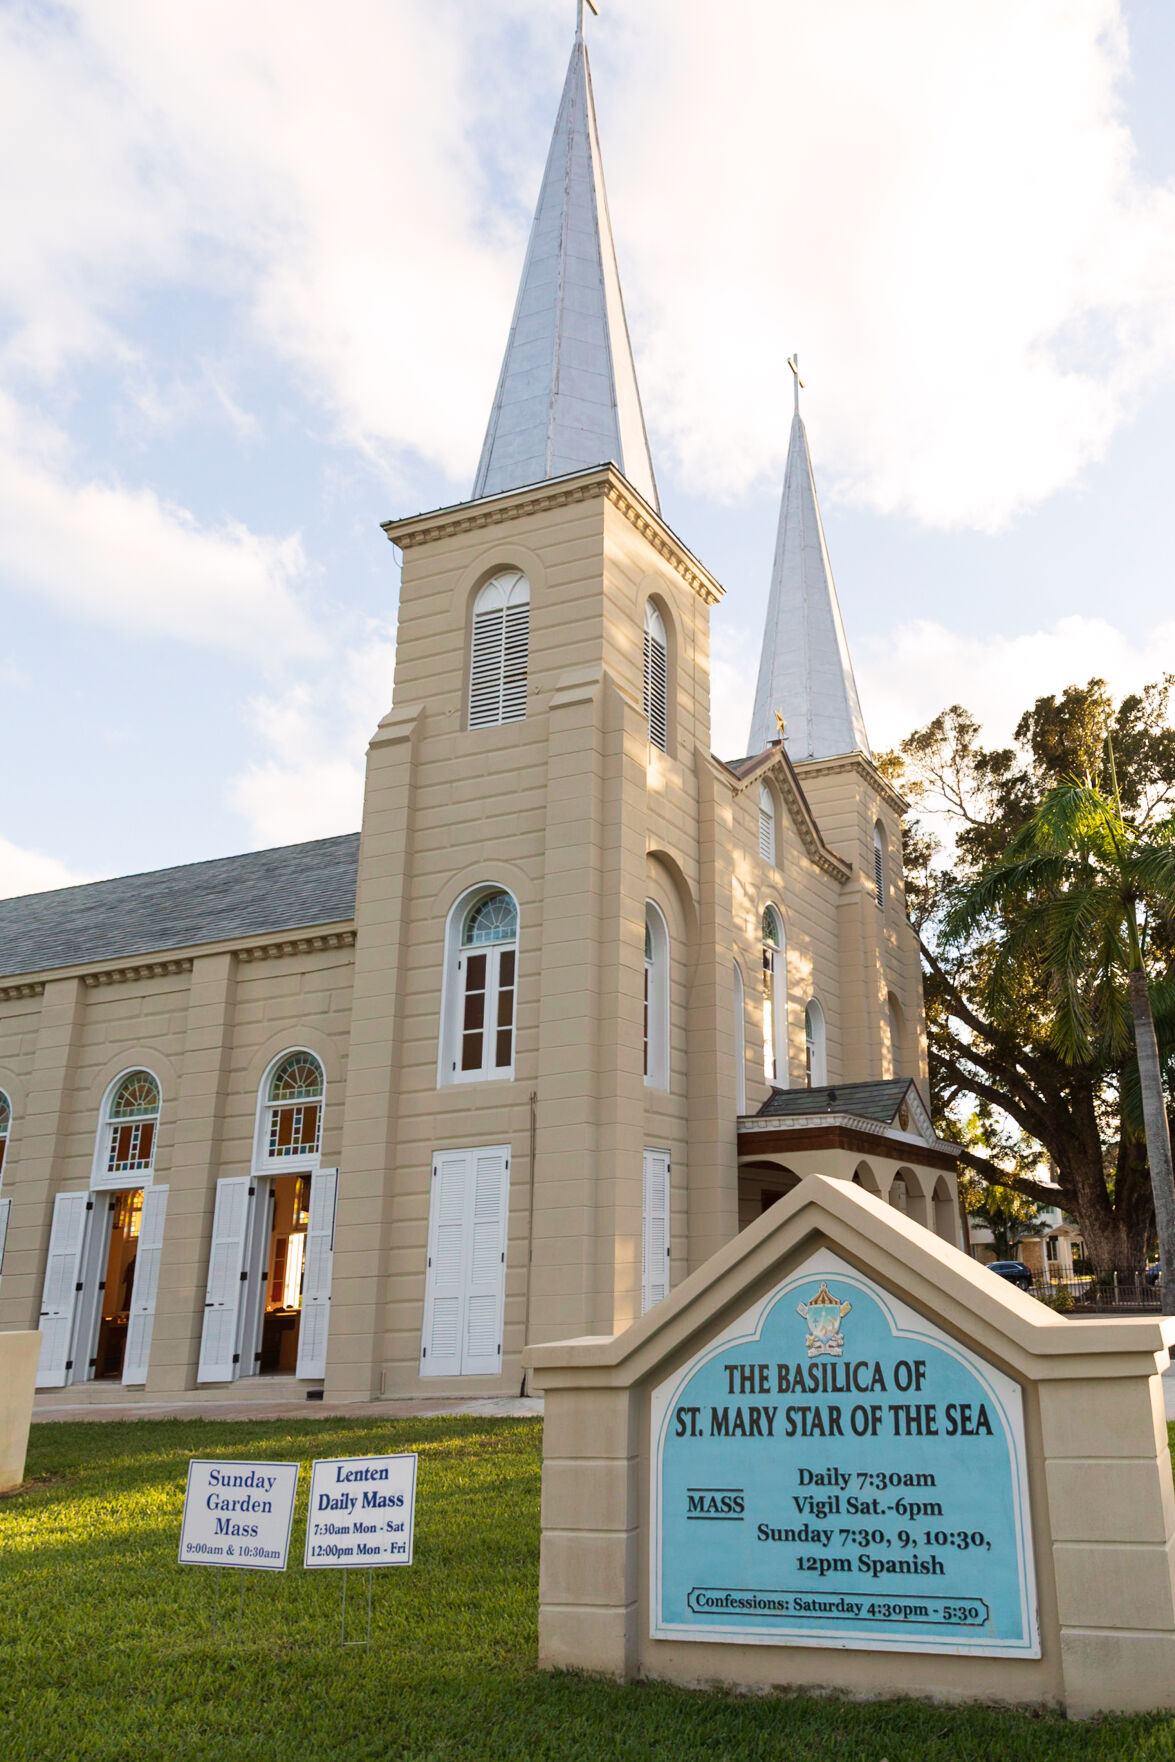 Basilica of St. Mary Star of the Sea in Key West